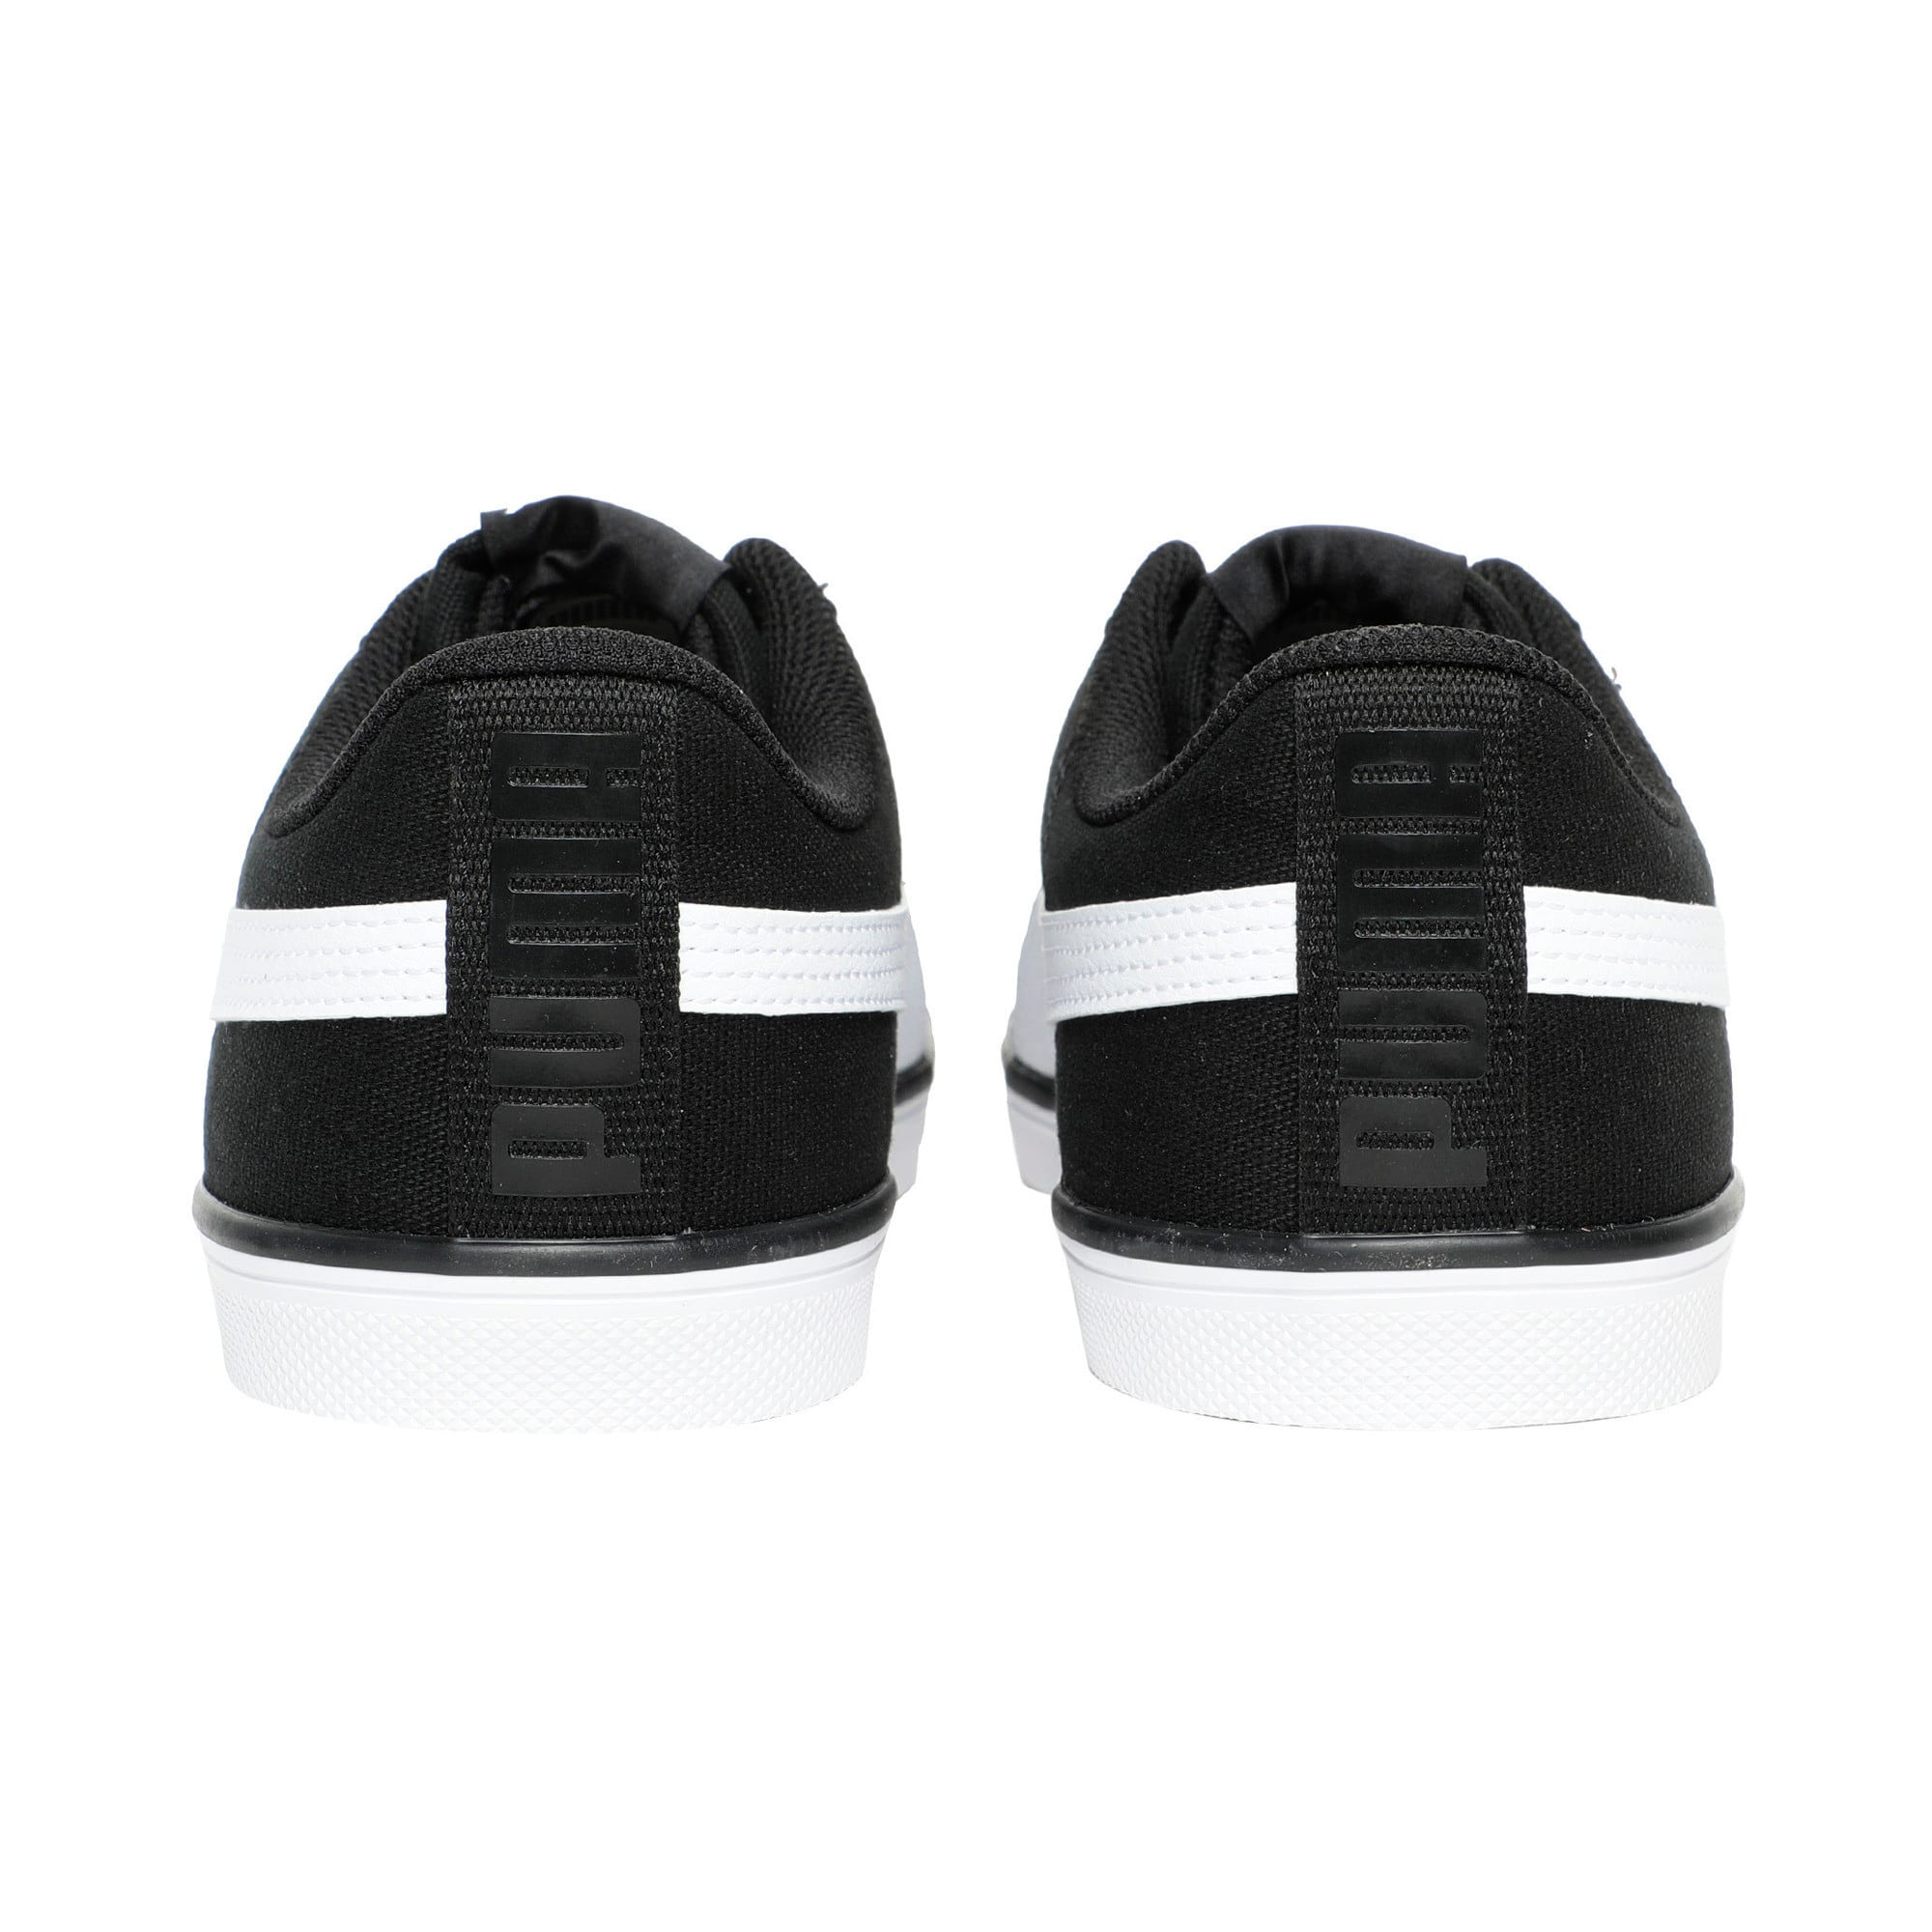 Thumbnail 3 of Urban Plus CV, Puma Black-Puma White, medium-IND